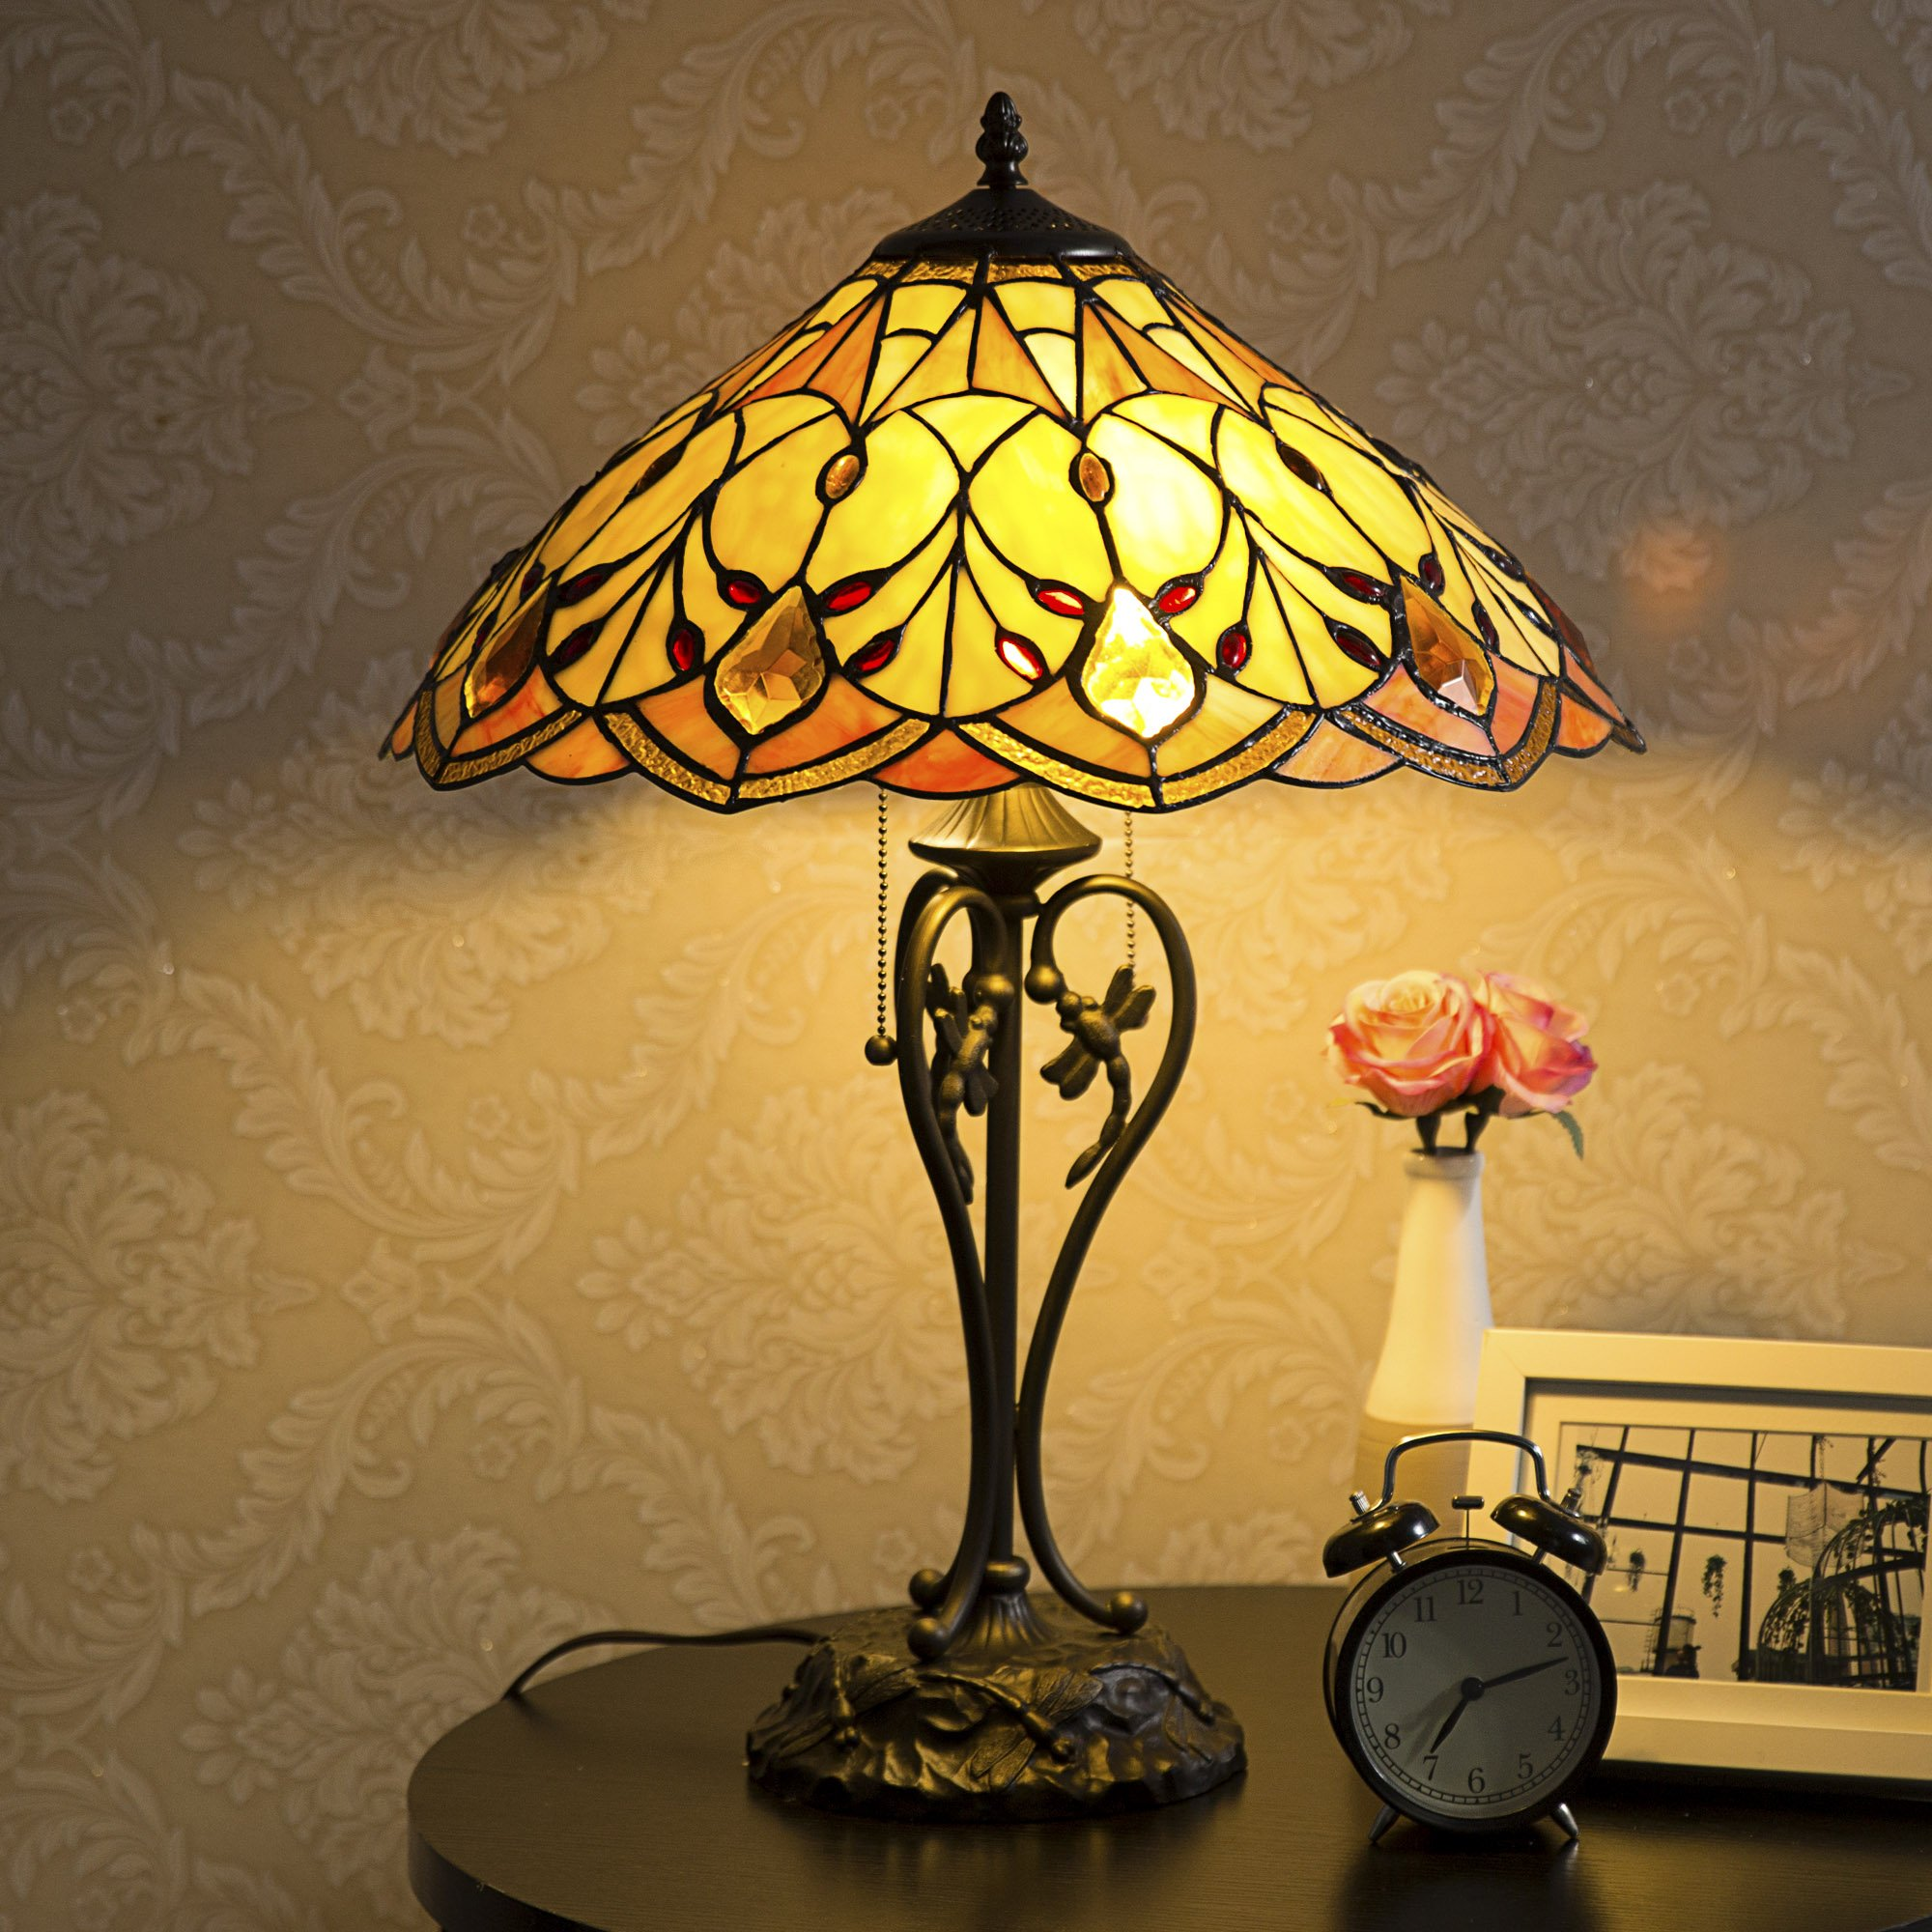 Cloud Mountain Tiffany-Style Table Lamp Victorian 2-Light with 17.5'' Shade 23'' Height by Cloud Mountain